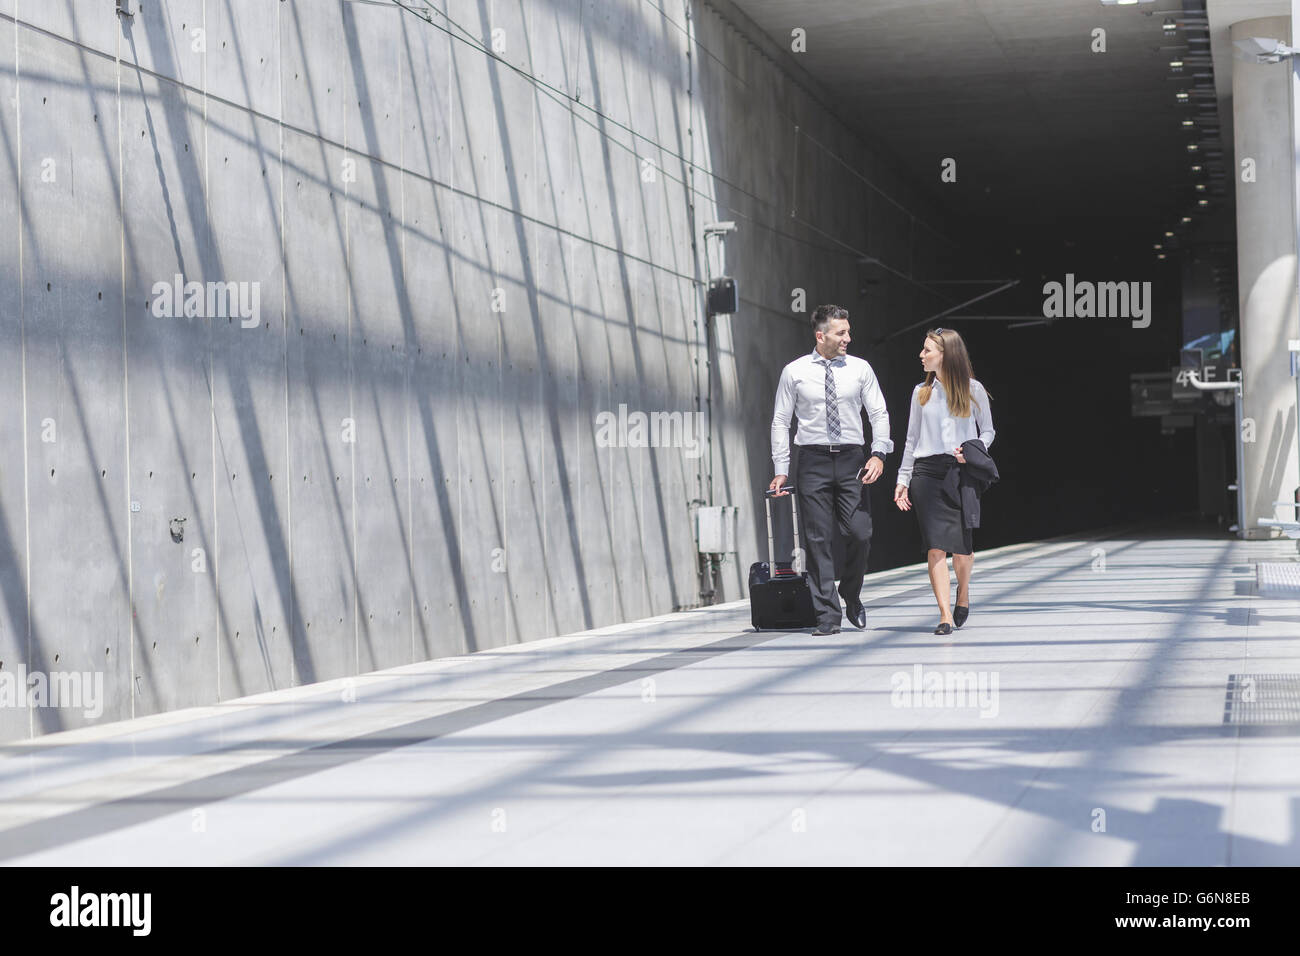 Businessman and businesswoman on the move - Stock Image